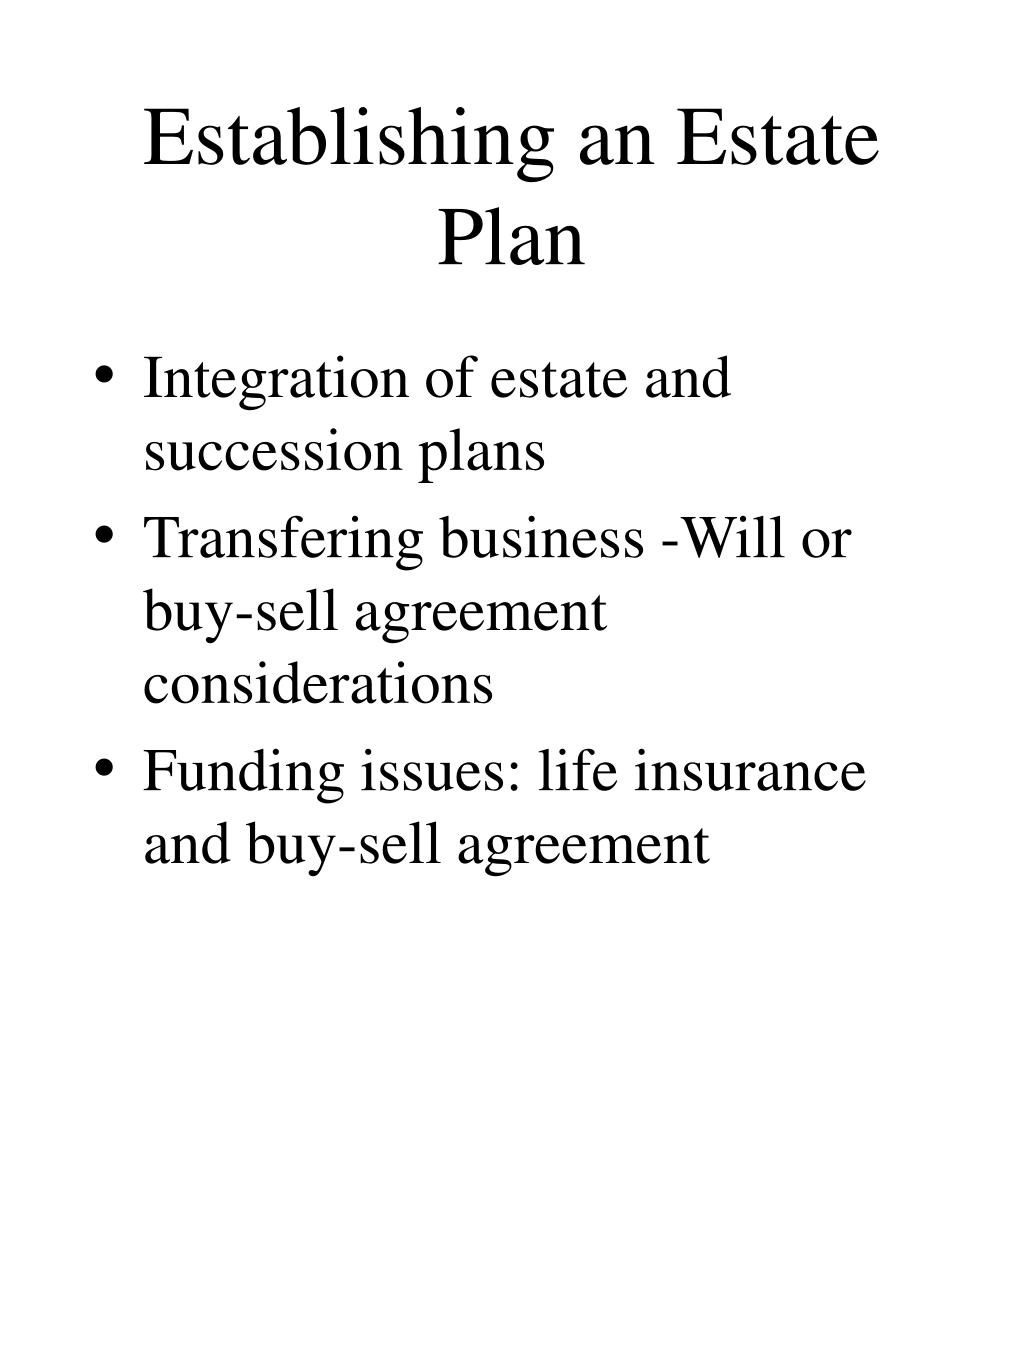 Establishing an Estate Plan